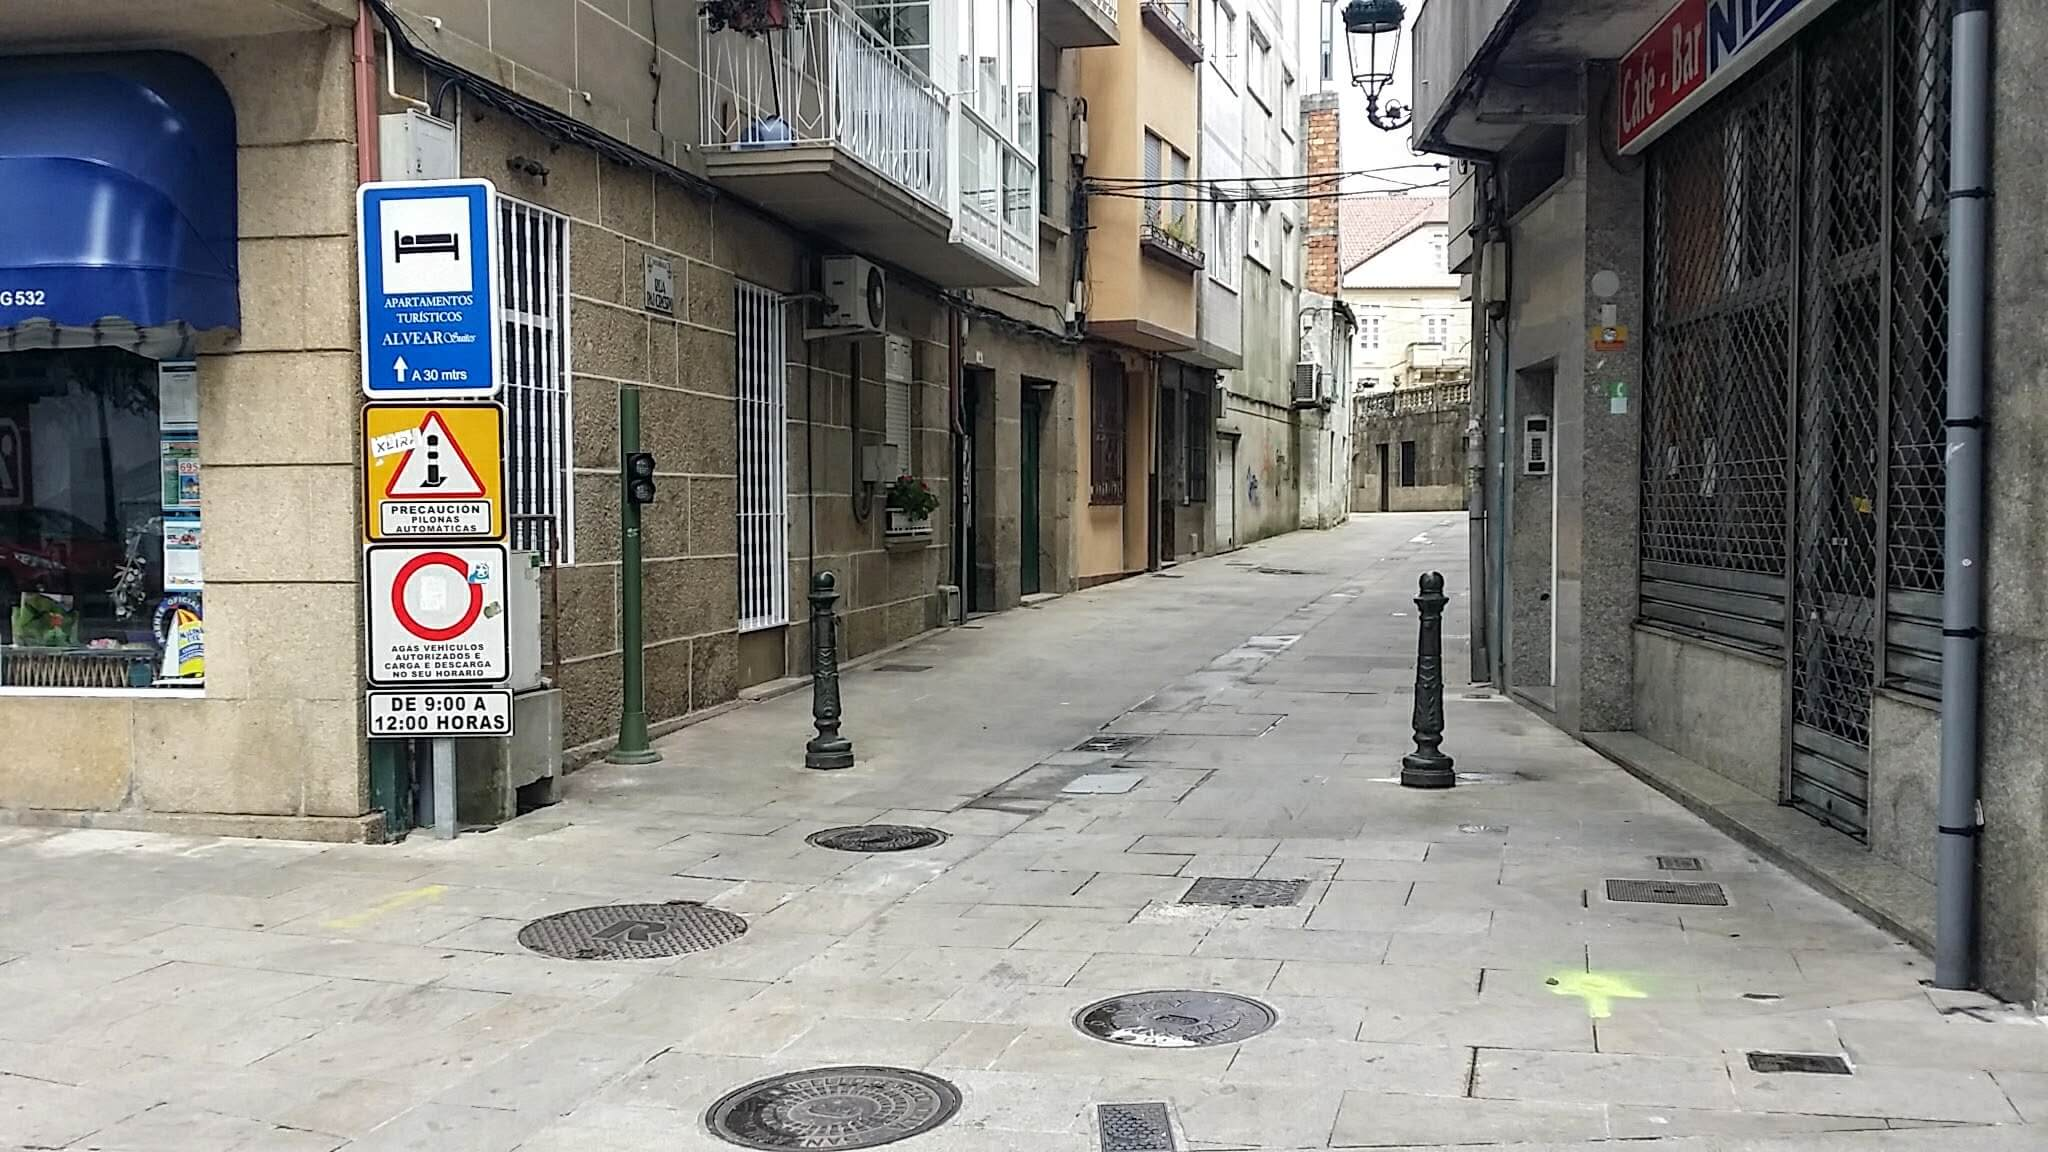 Find Quiet Walking Street, the Rúa Rita Otero, Redondela, Spain on day twenty-one of the Camino Portugués